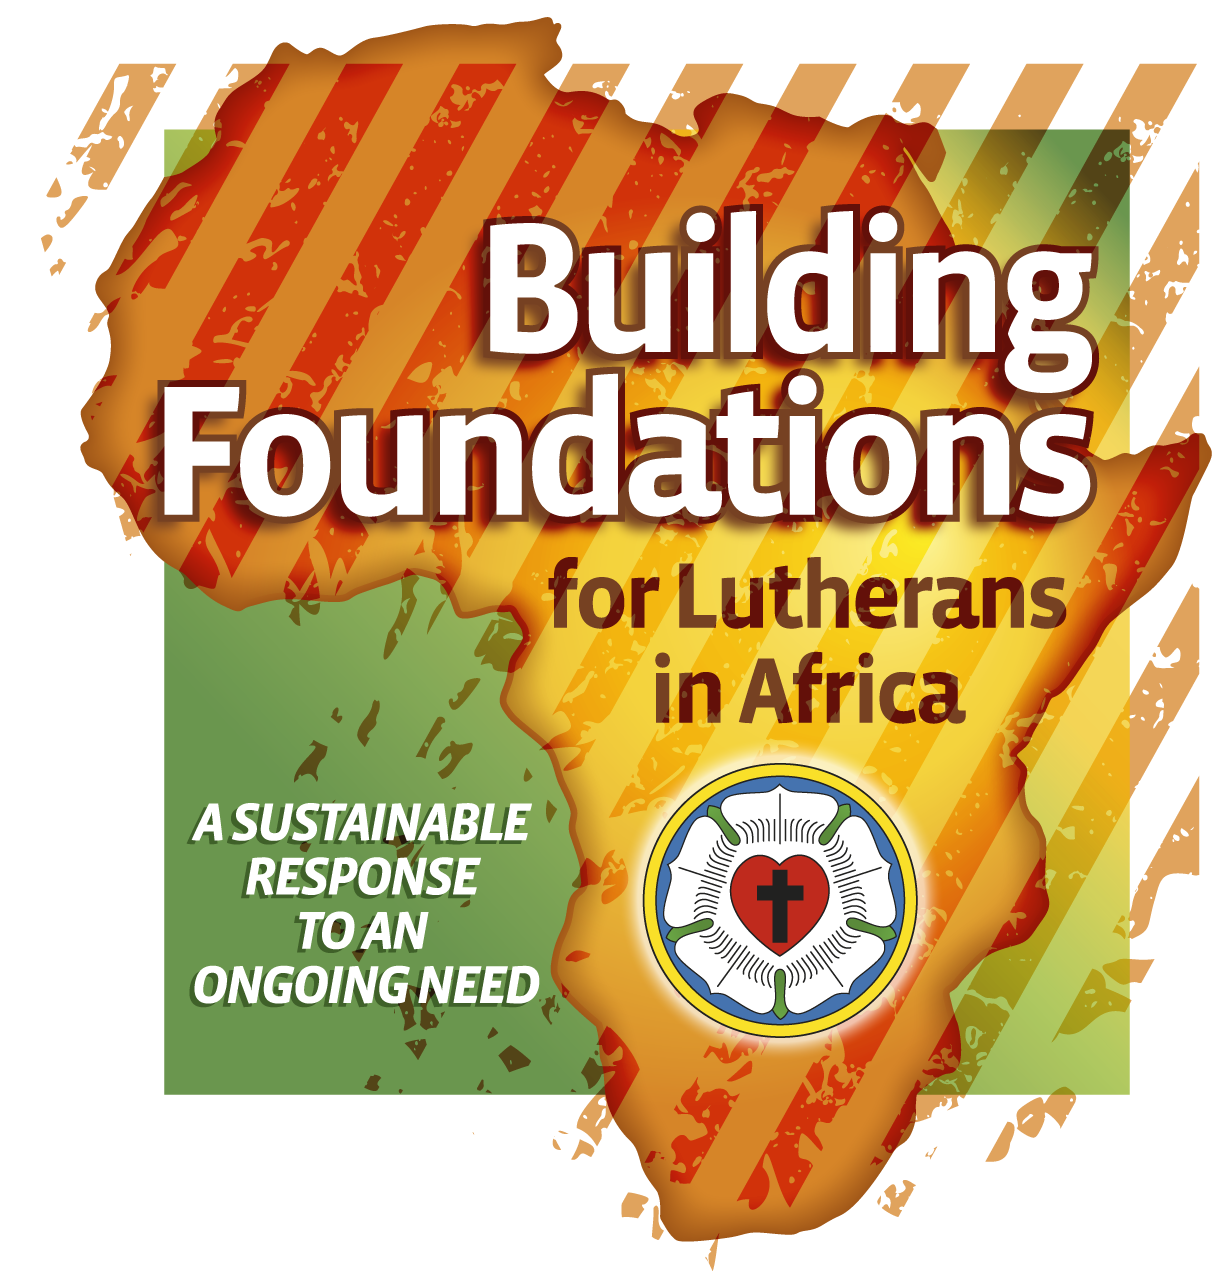 Lutherans in Africa - LiA Building Foundations